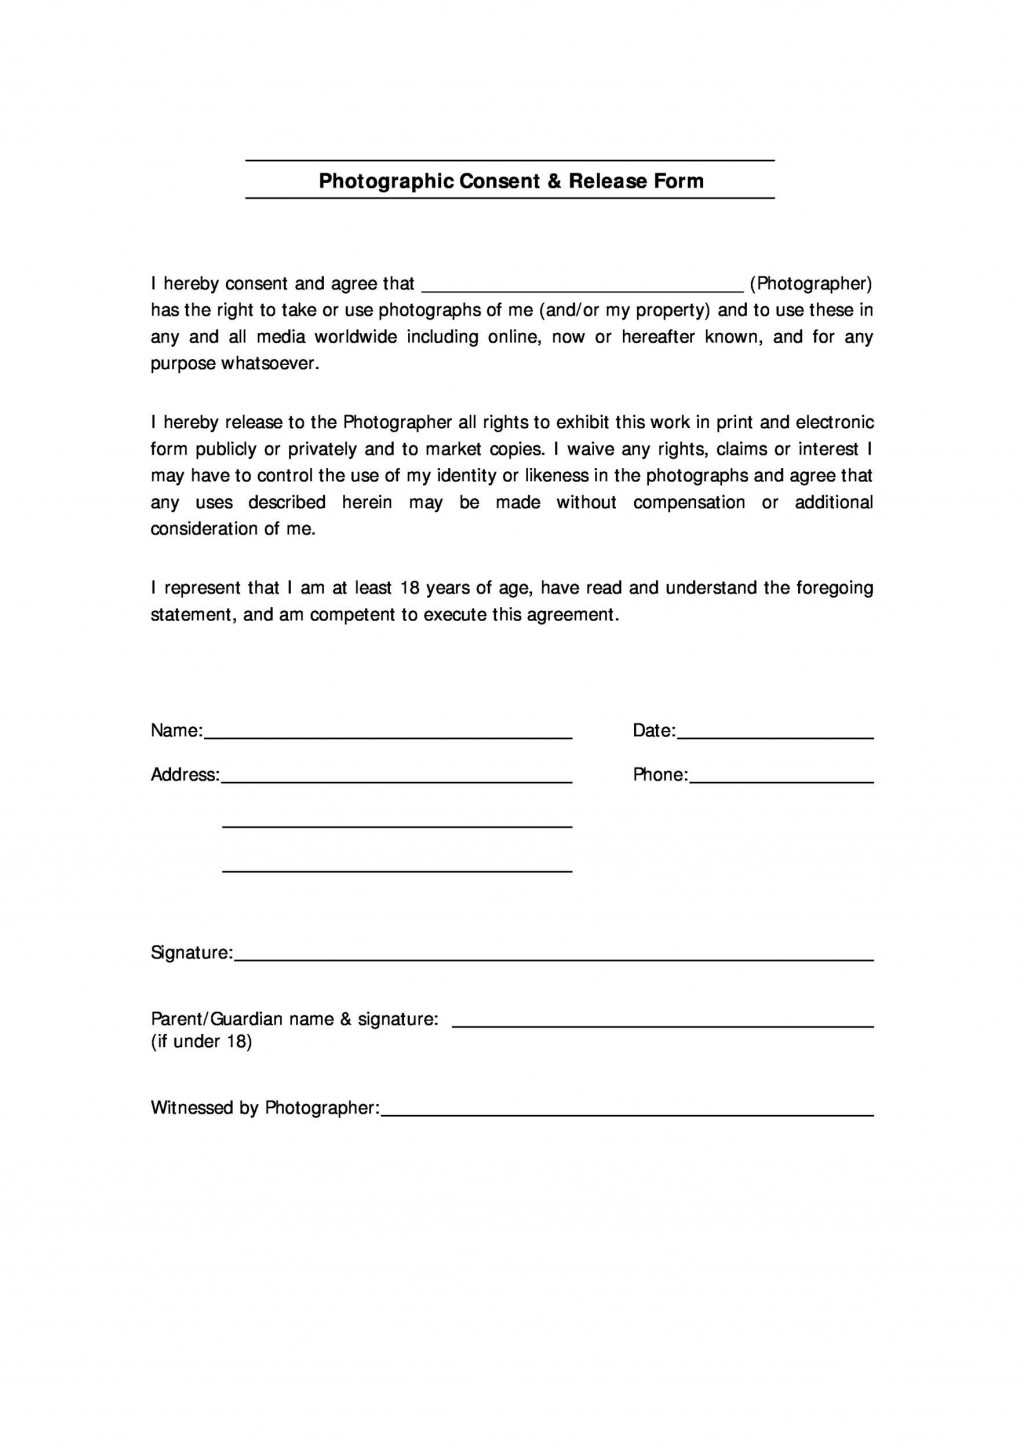 008 Wondrou Photo Release Form Template High Definition  Video Consent Australia Free AndLarge